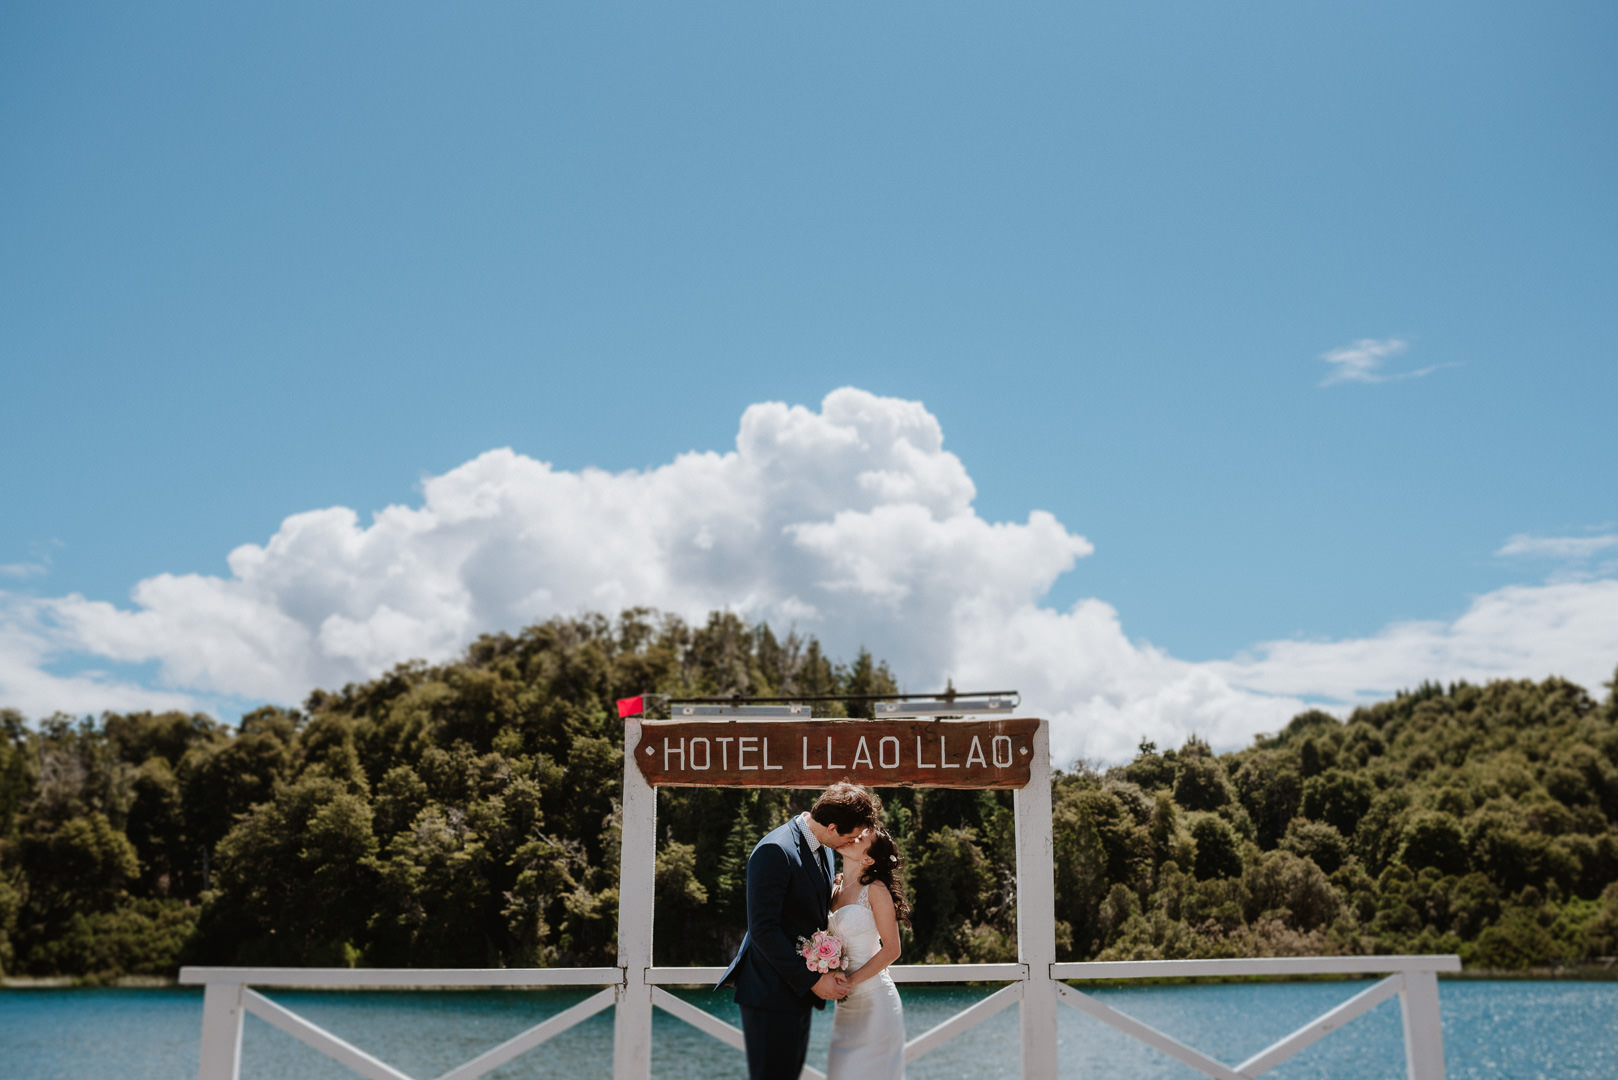 Llao Llao destination wedding